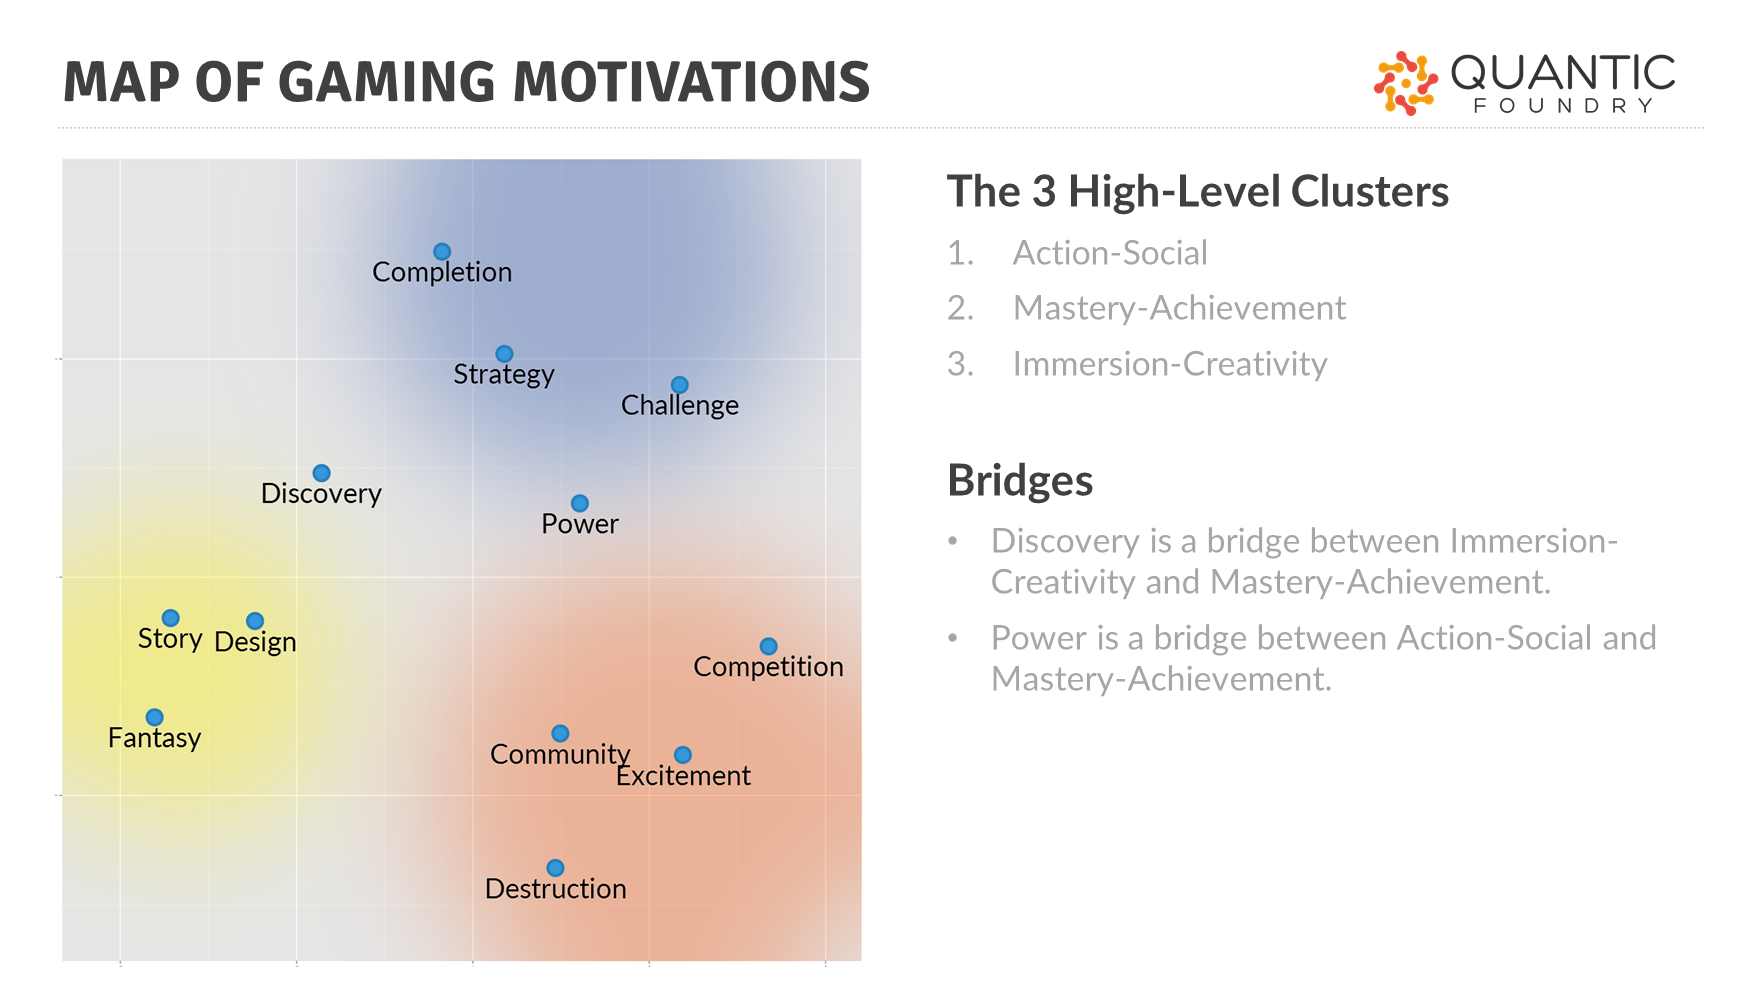 gaming motivations group into high level clusters quantic foundry map of gaming motivations